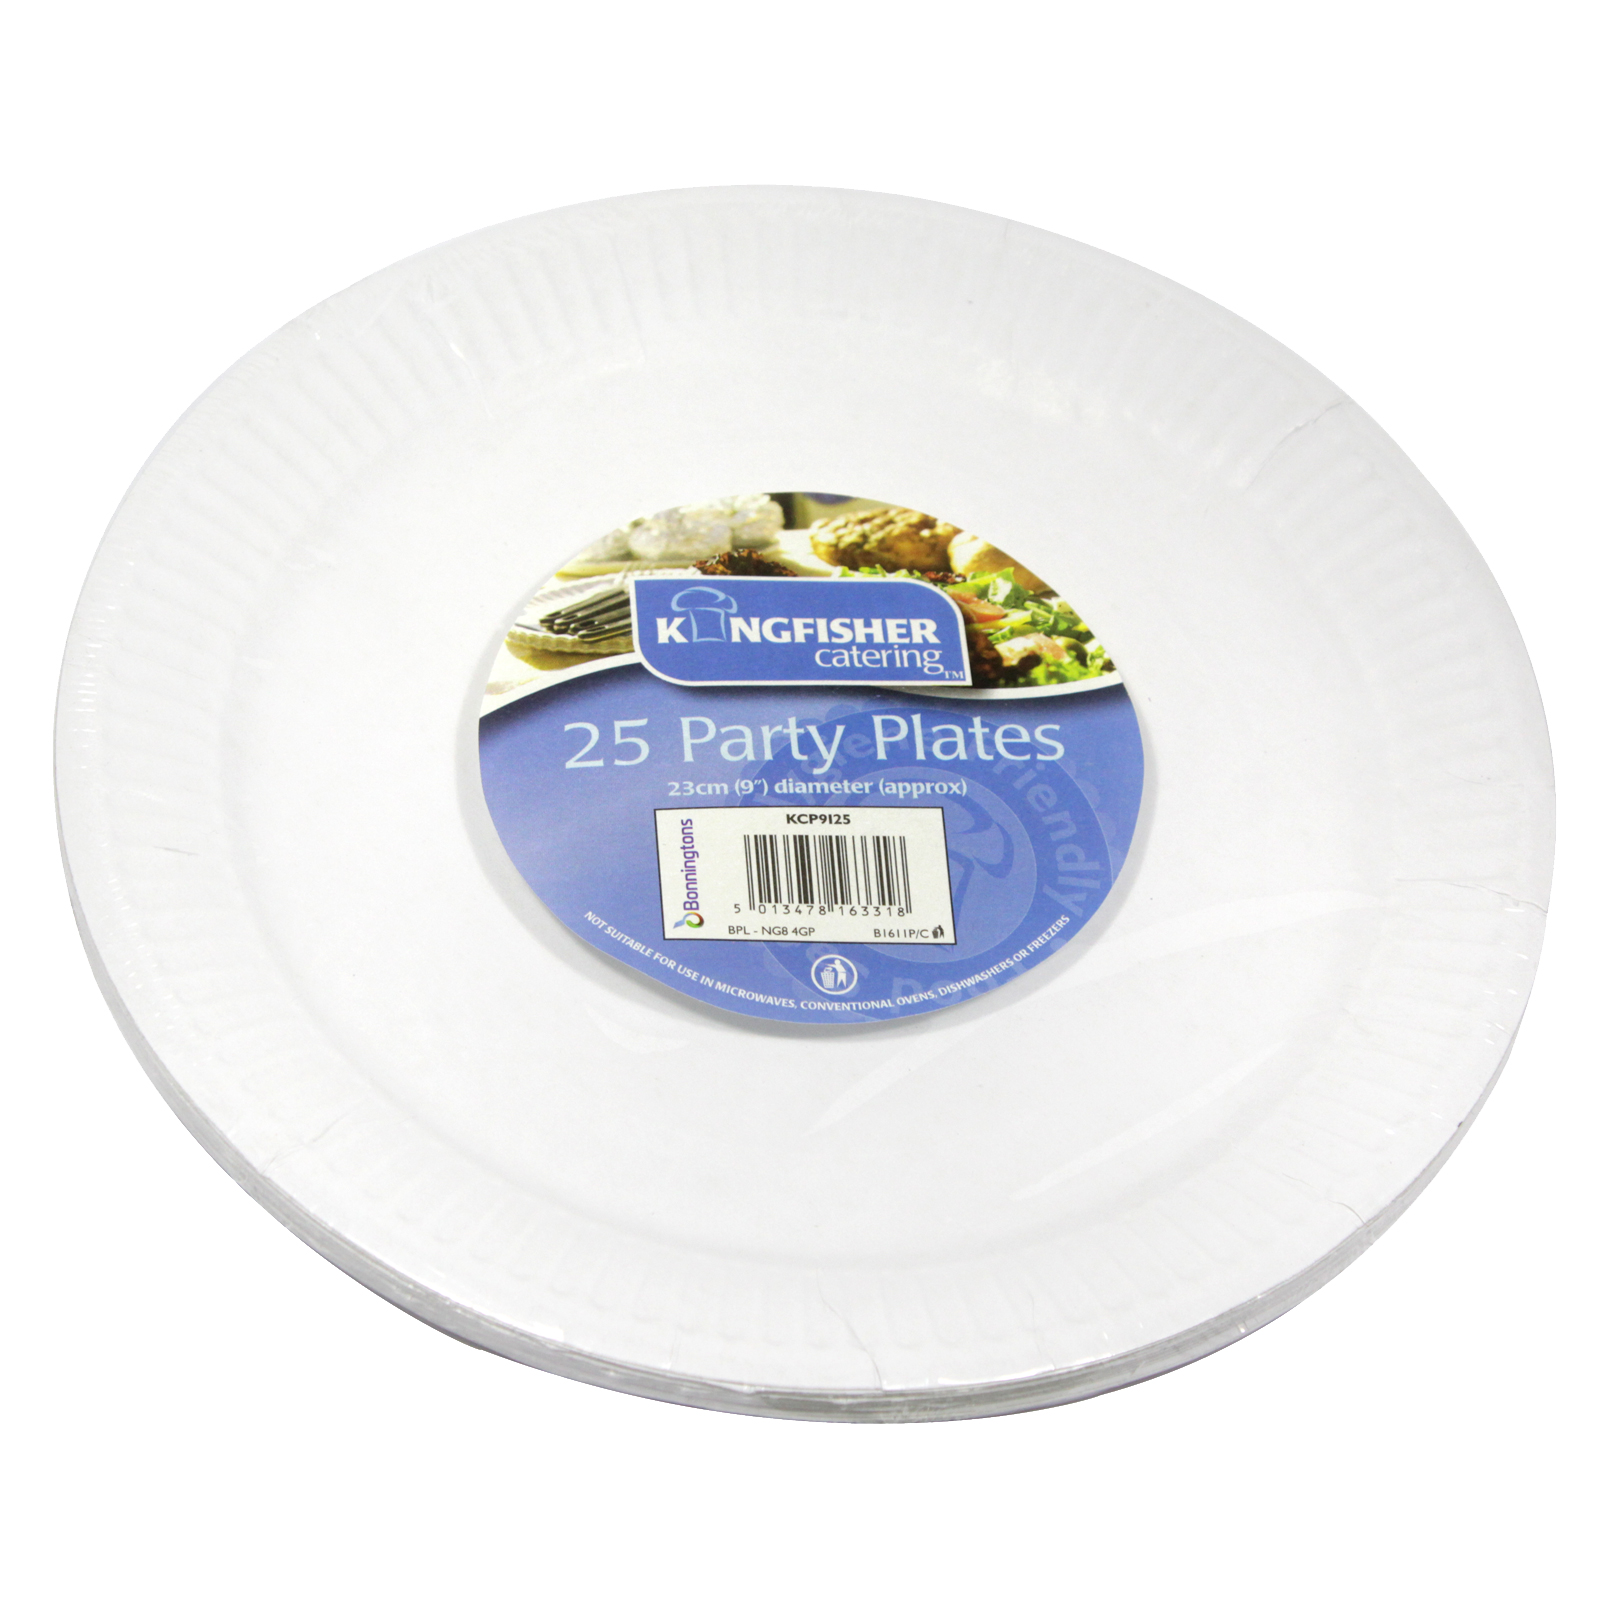 KINGFISHER 25X9 PAPER PLATES WHITE